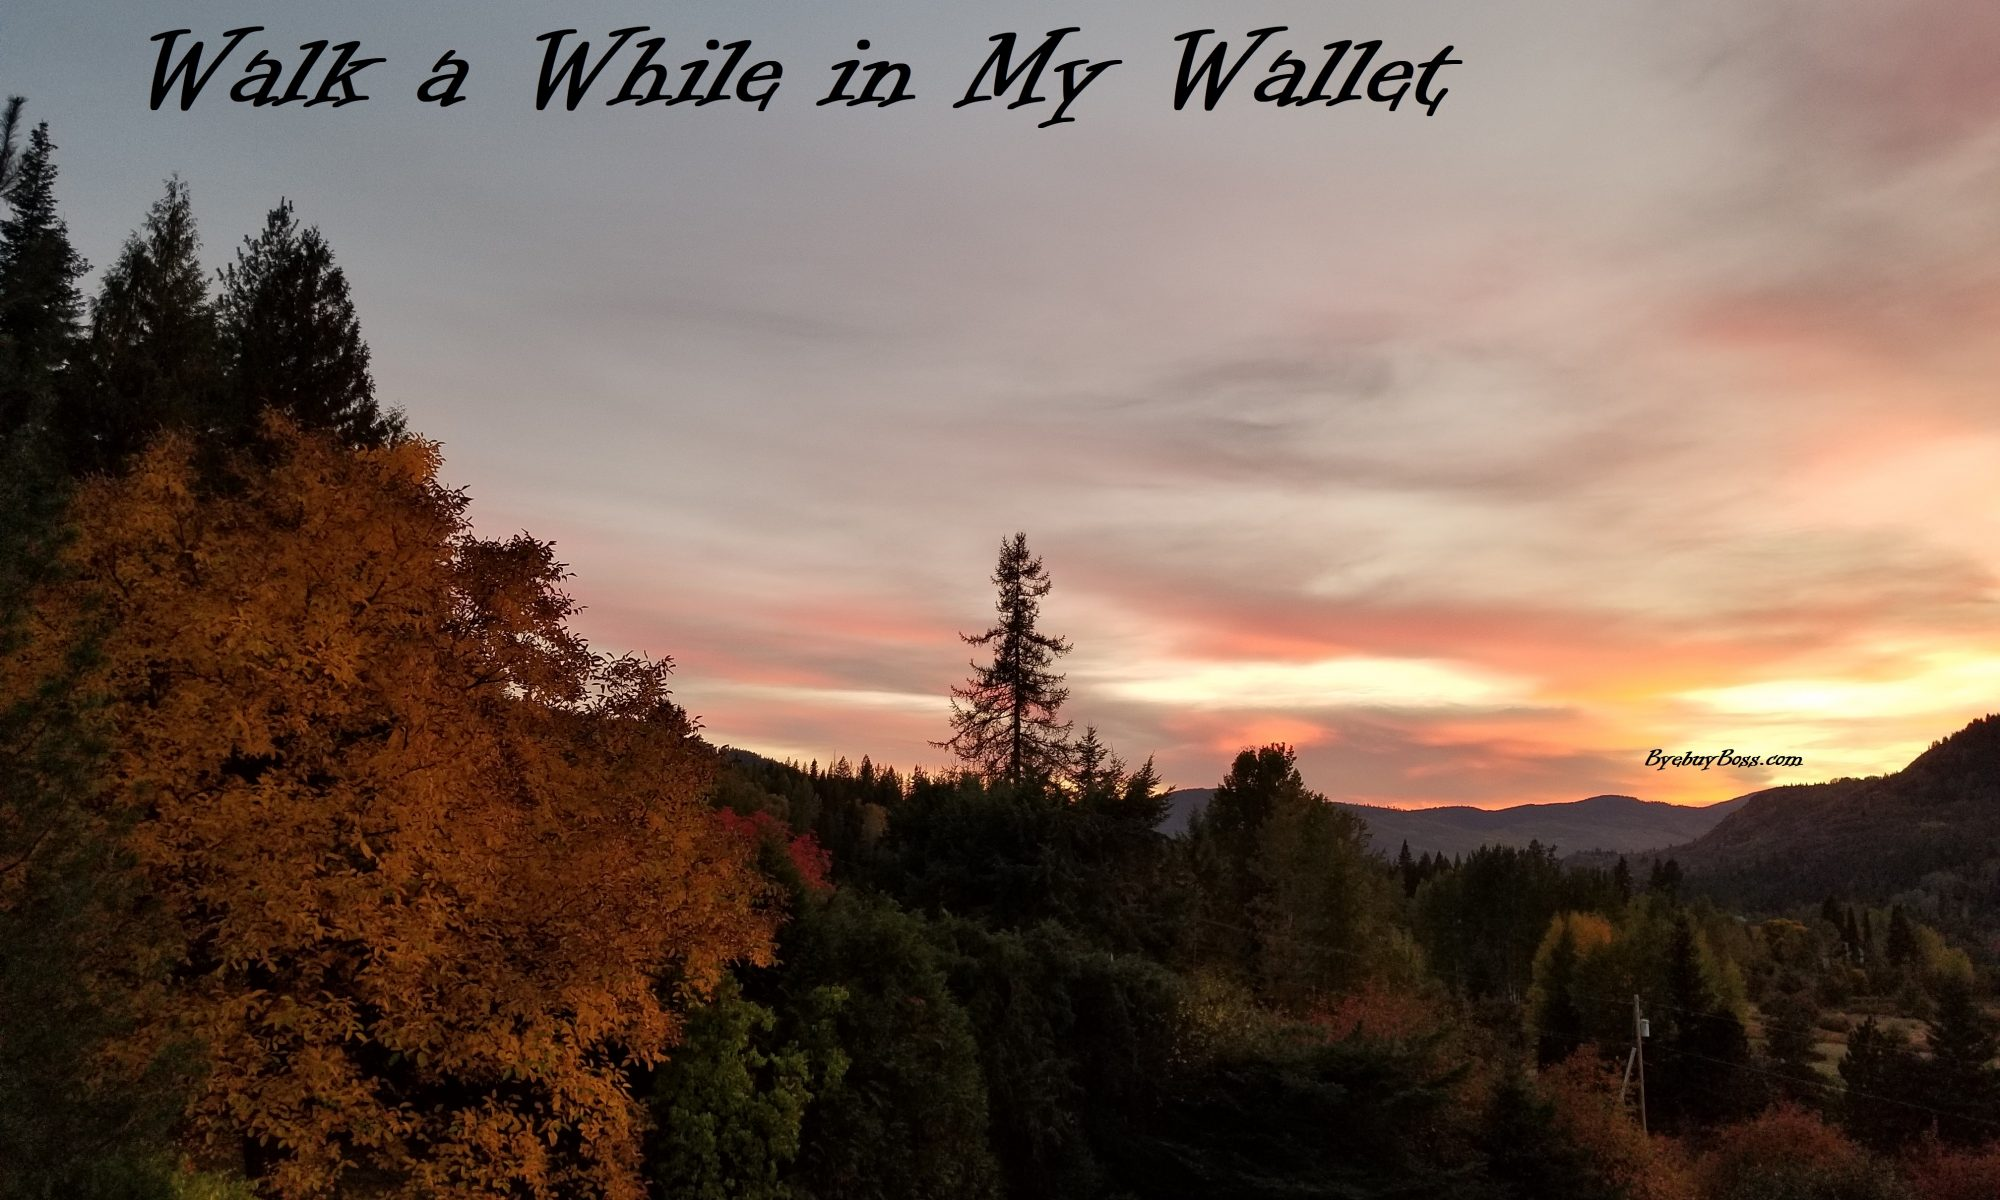 Walk a While in My Wallet